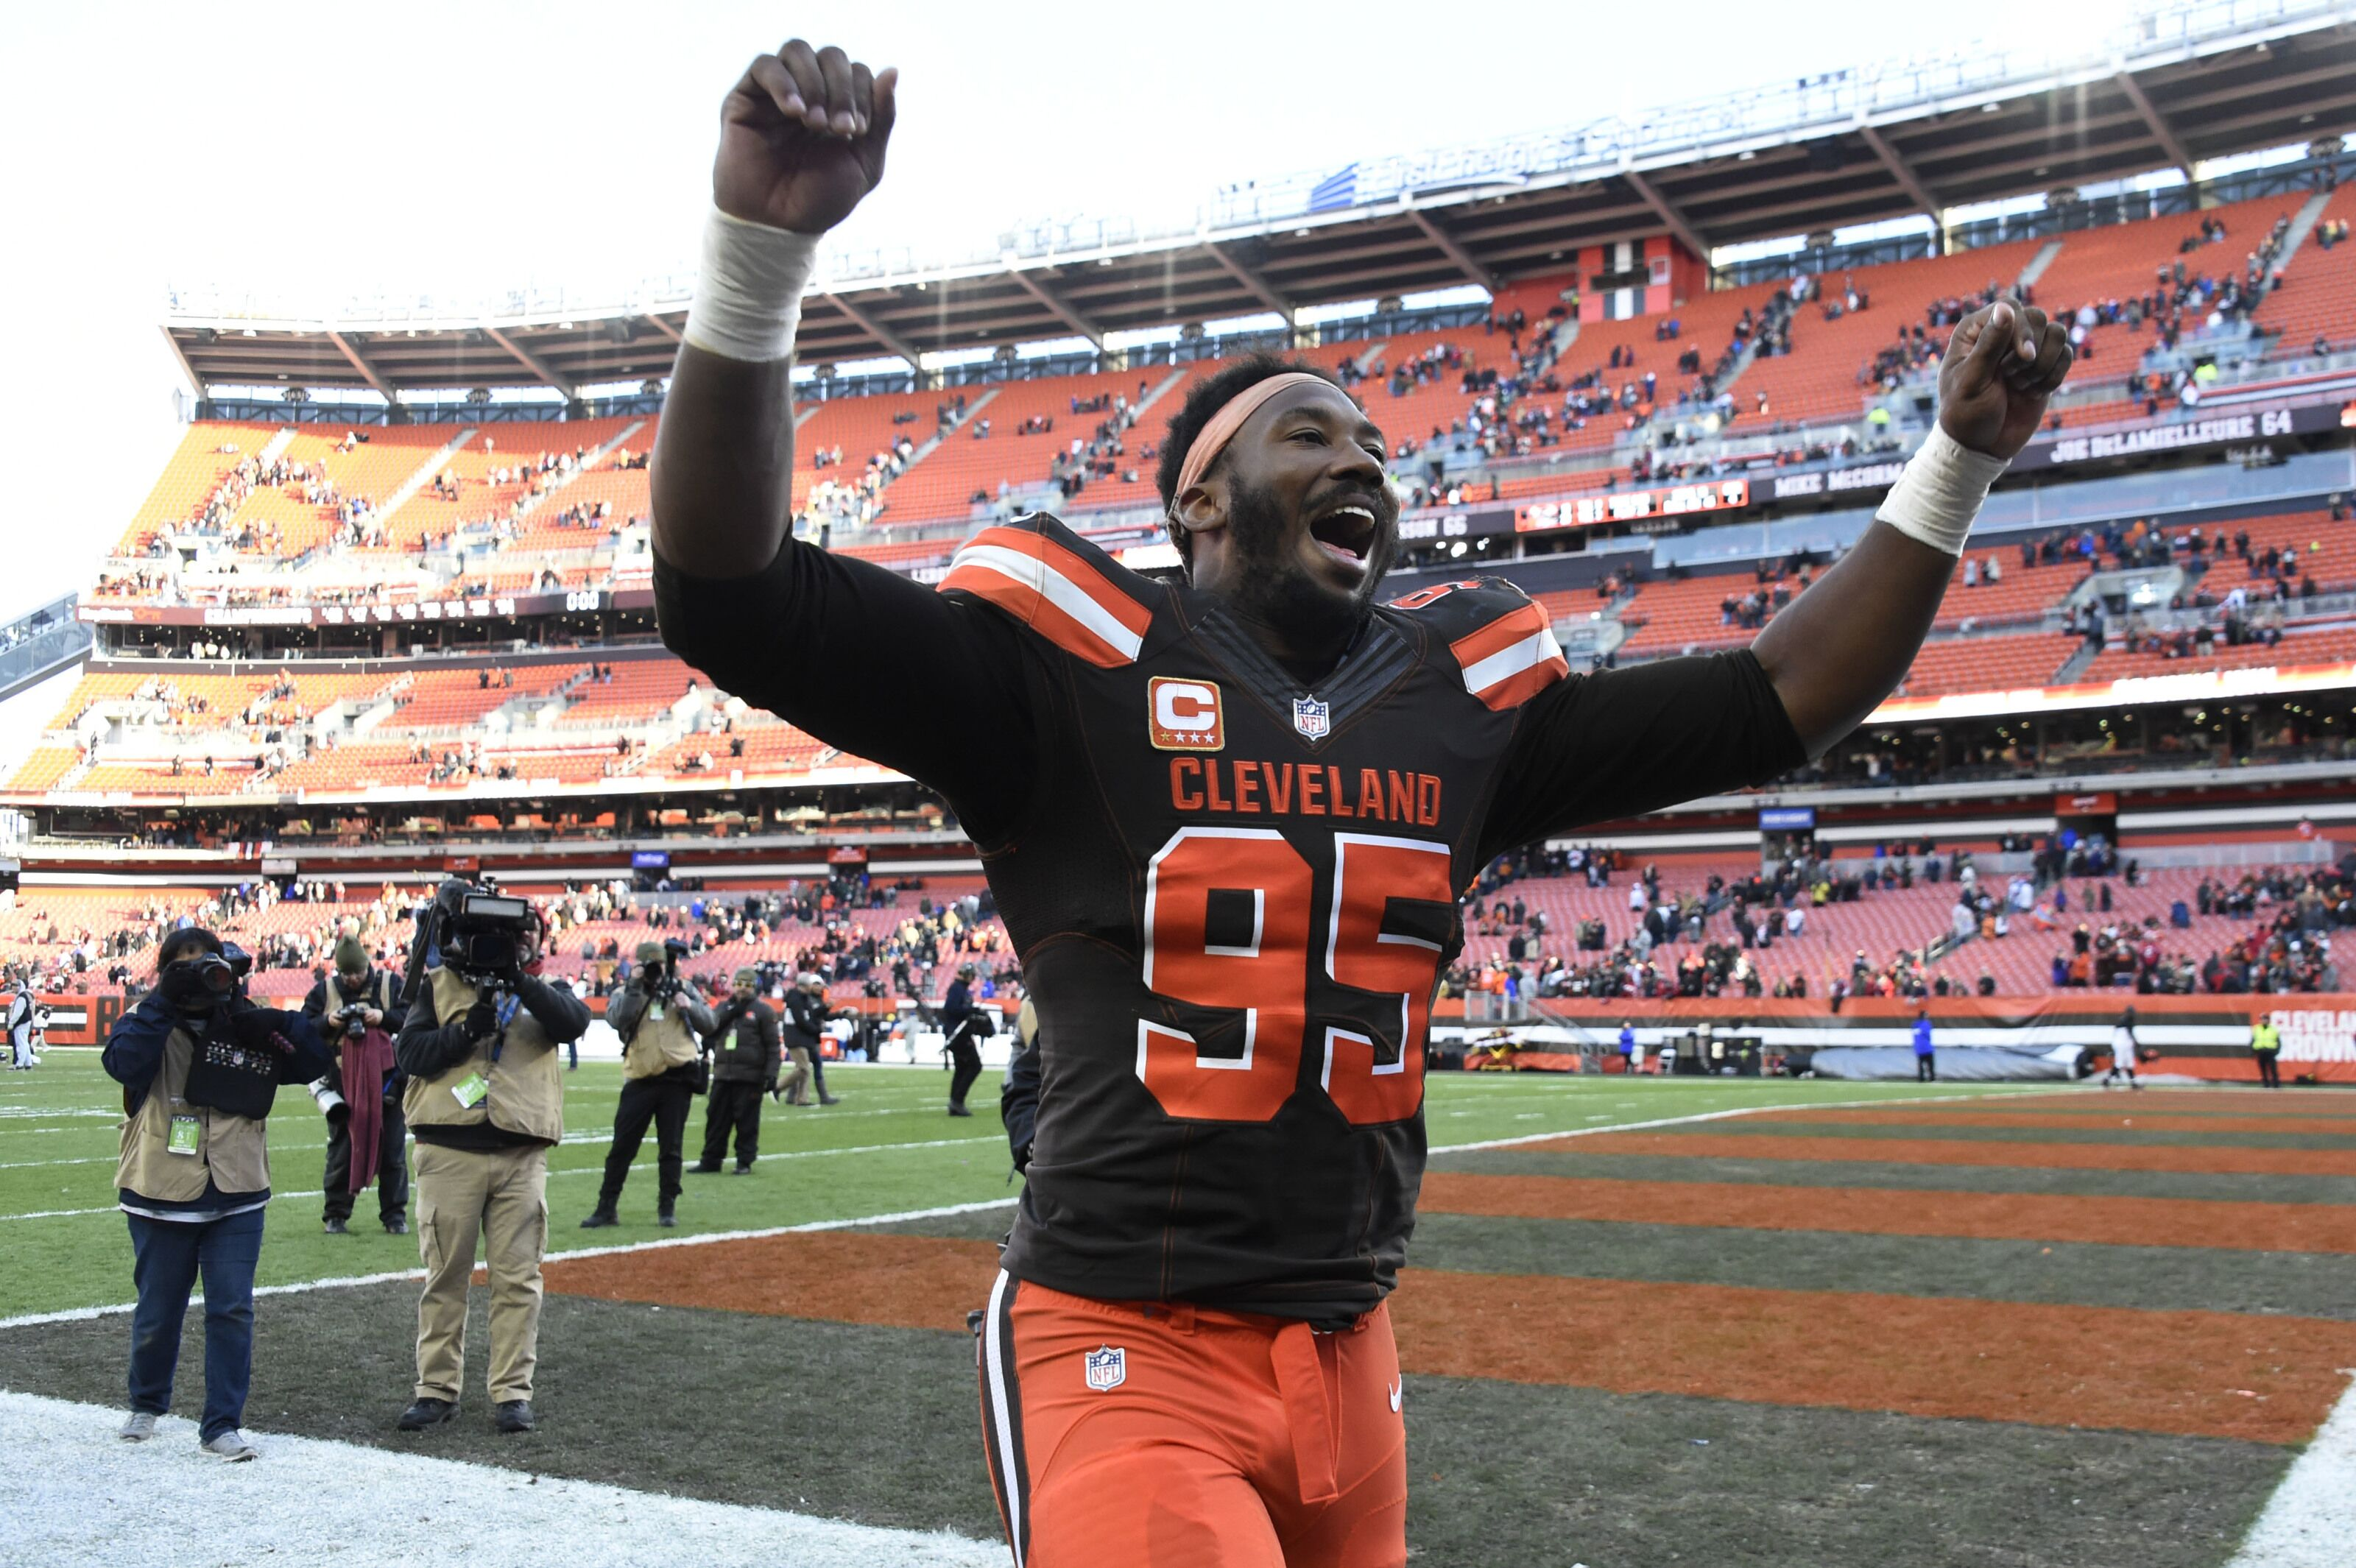 Cleveland Browns defensive end Myles Garrett has DPOY potential in 2019